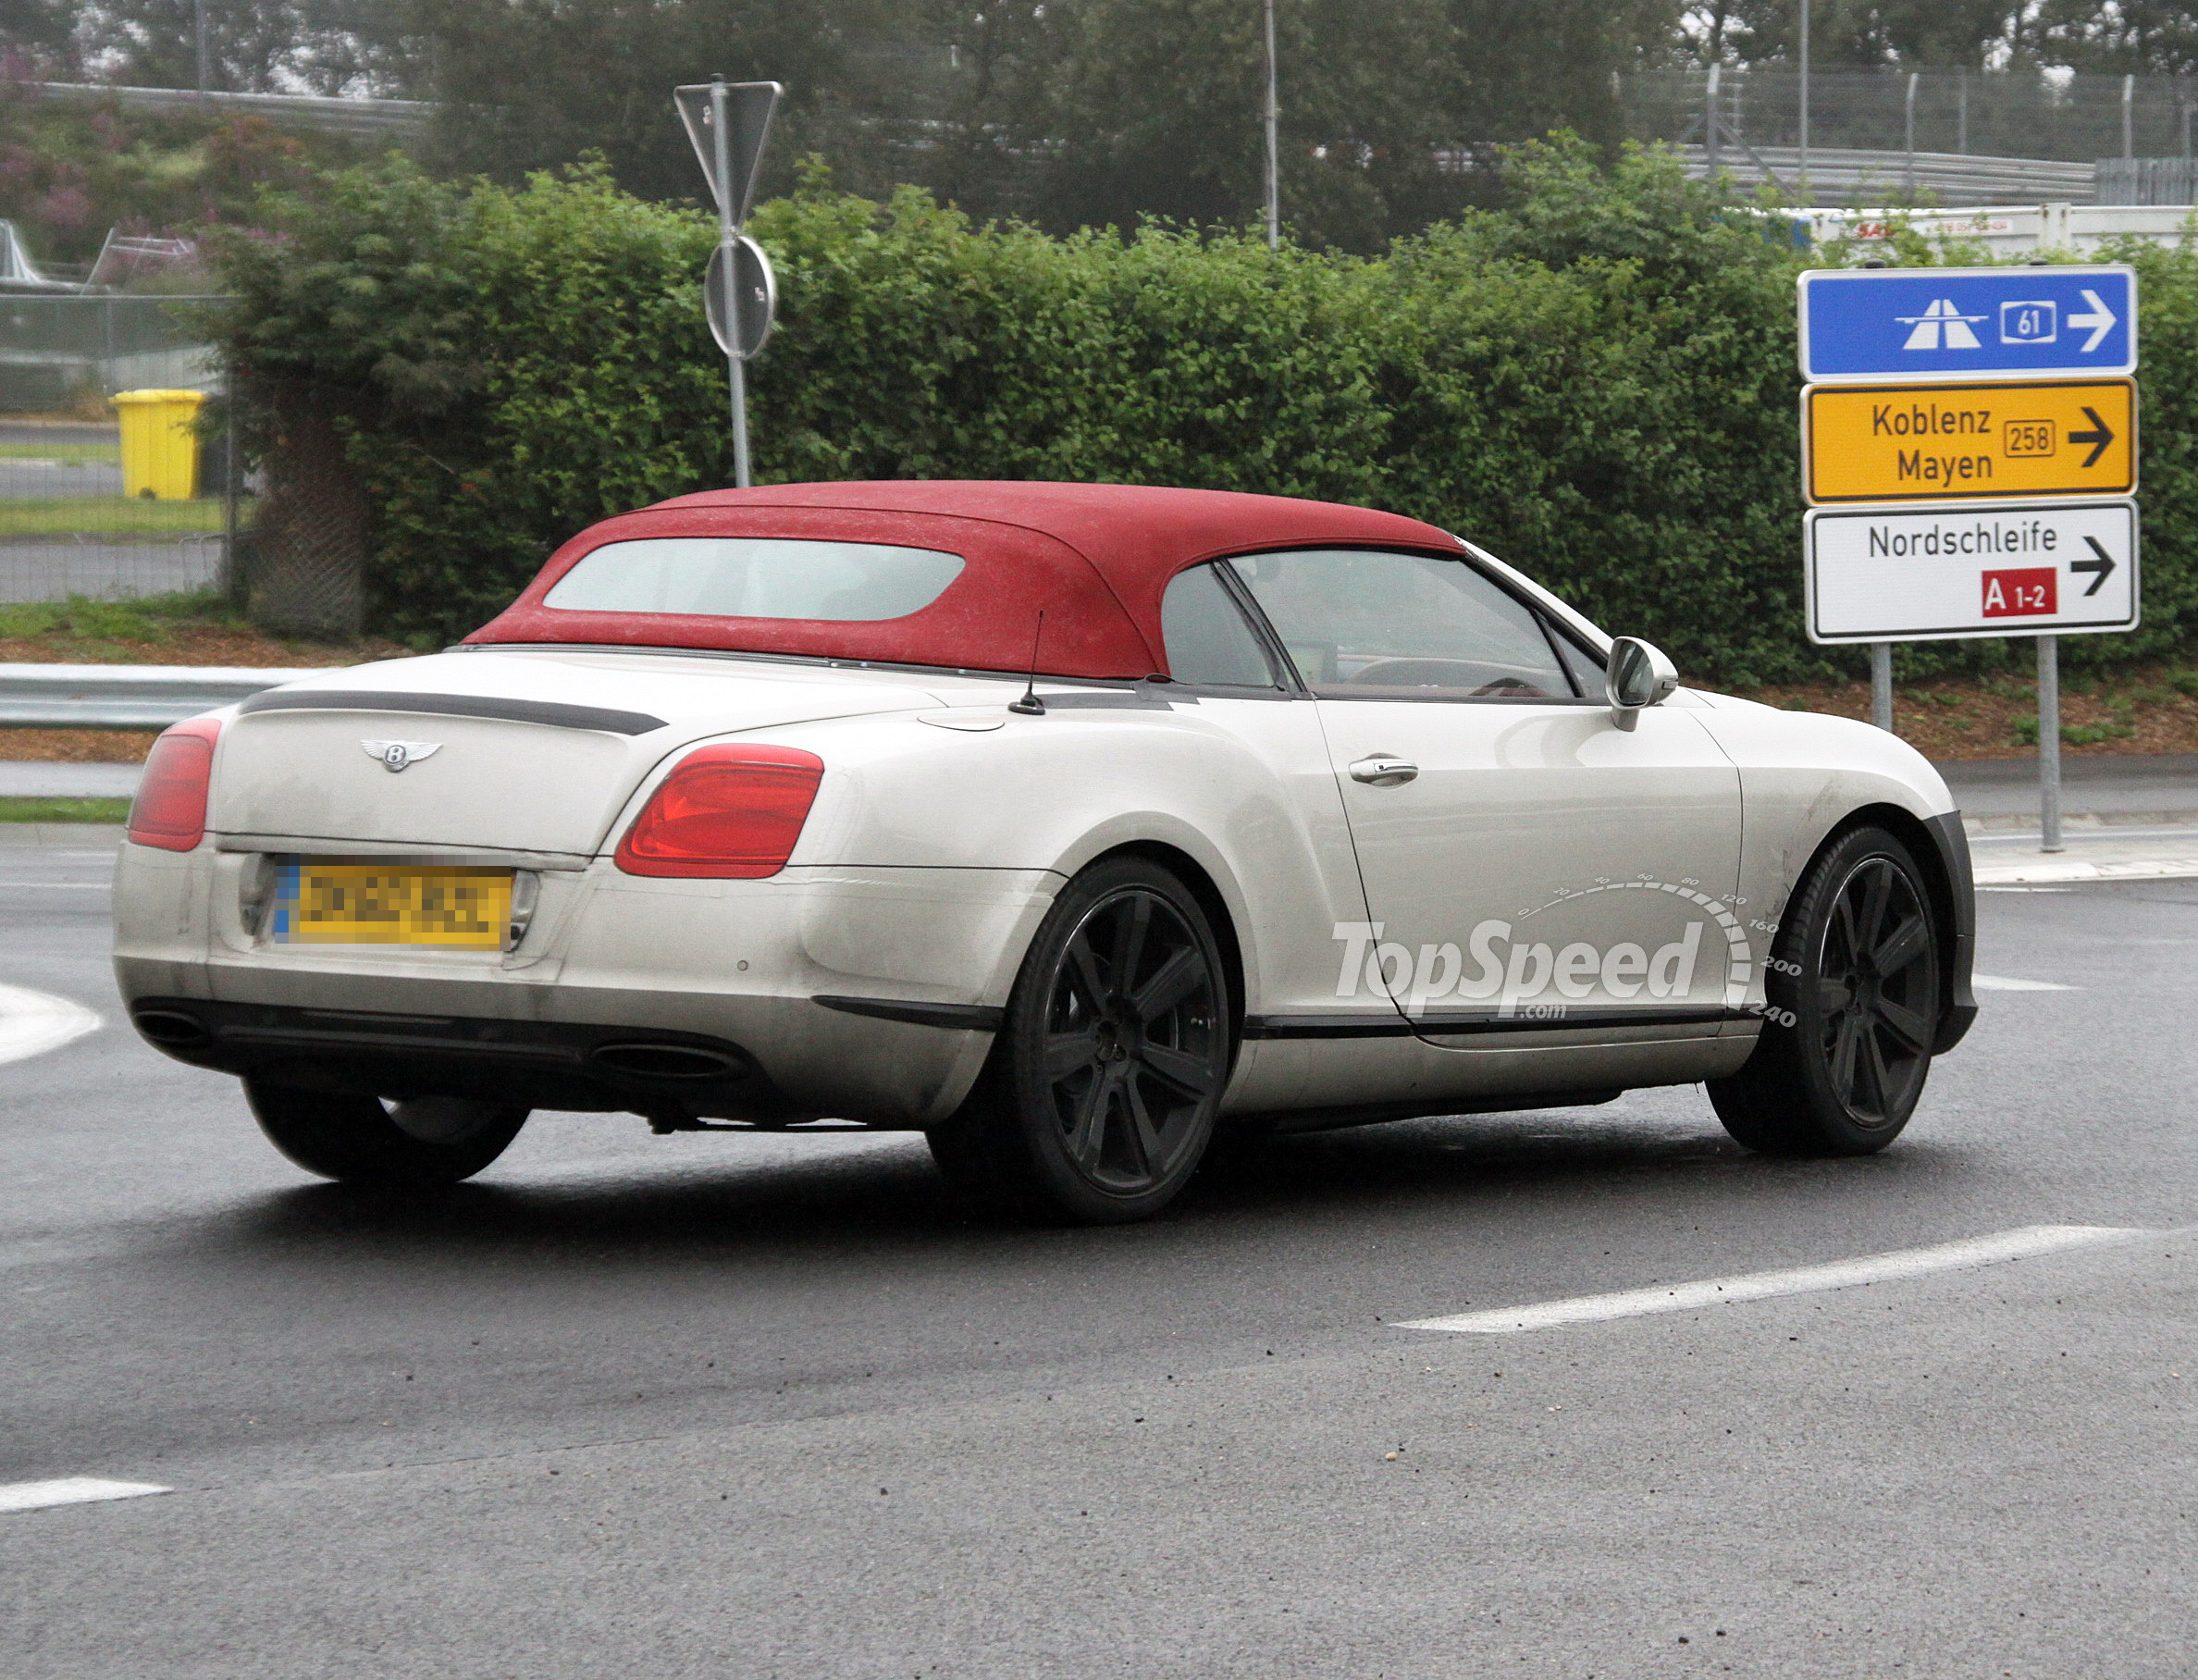 2012 Bentley Continental GTC Review - Top Speed